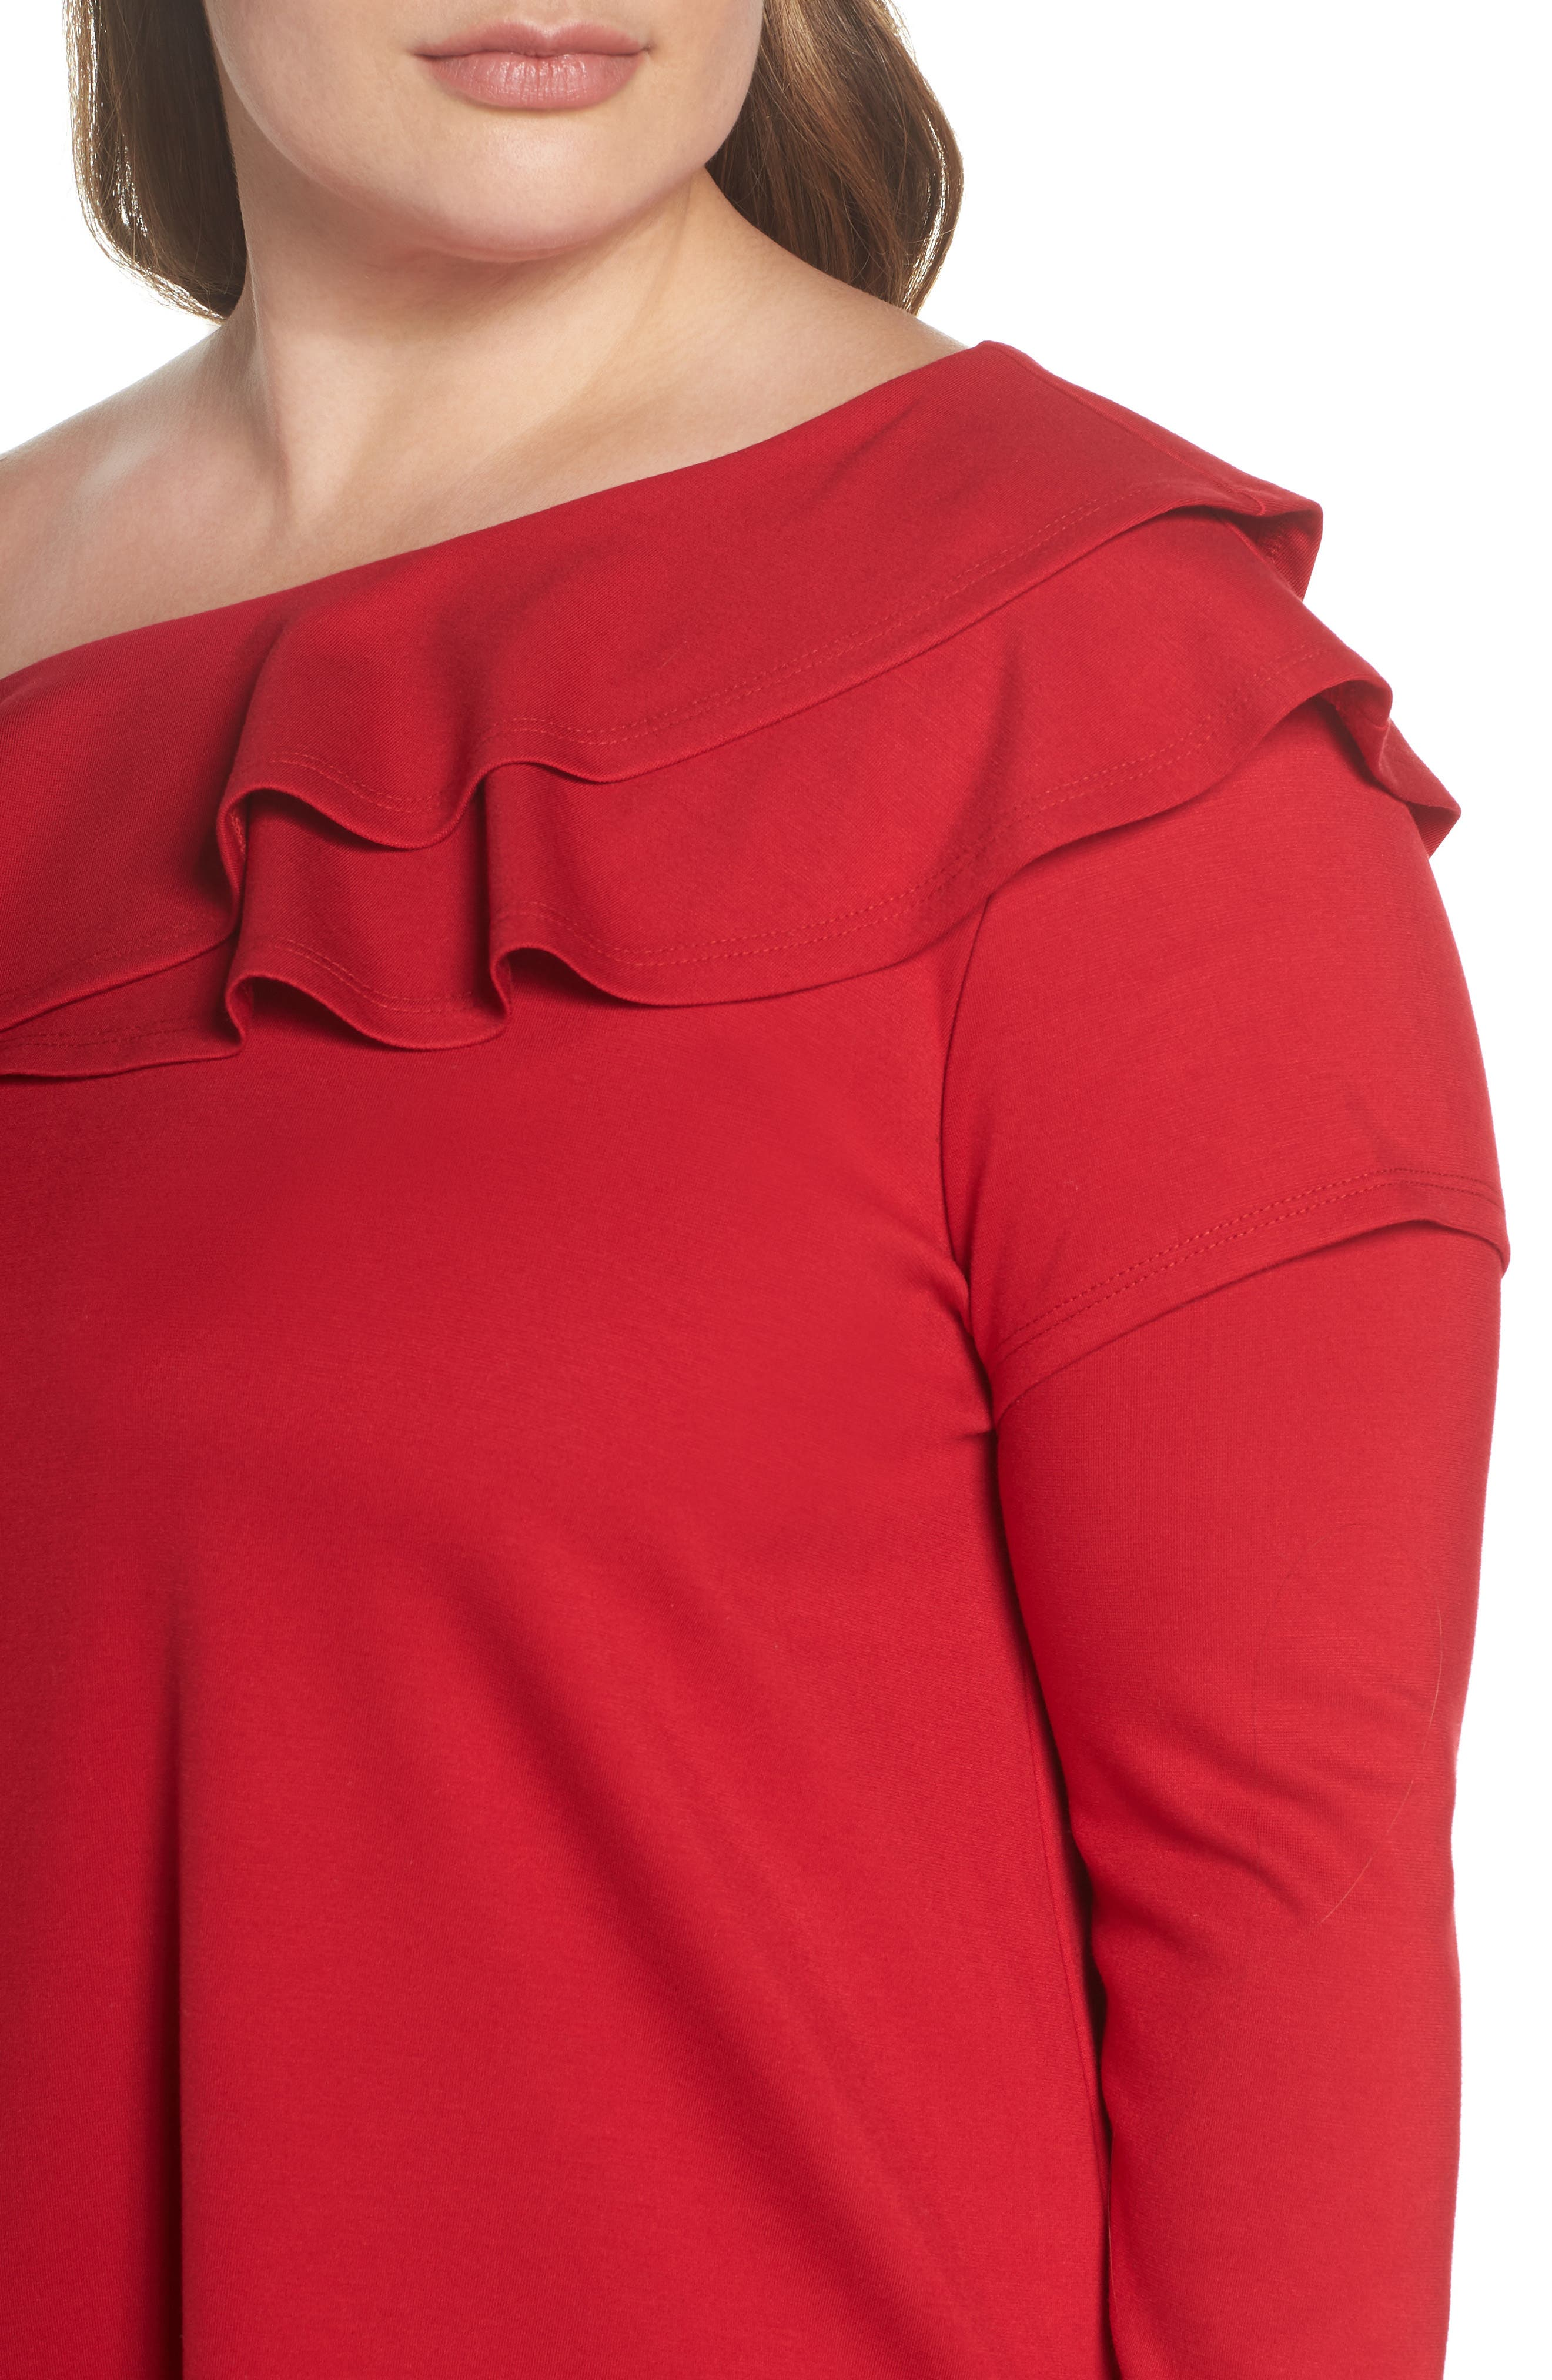 x Living in Yellow Elizabeth One-Shoulder Ruffle Top,                             Alternate thumbnail 8, color,                             Red